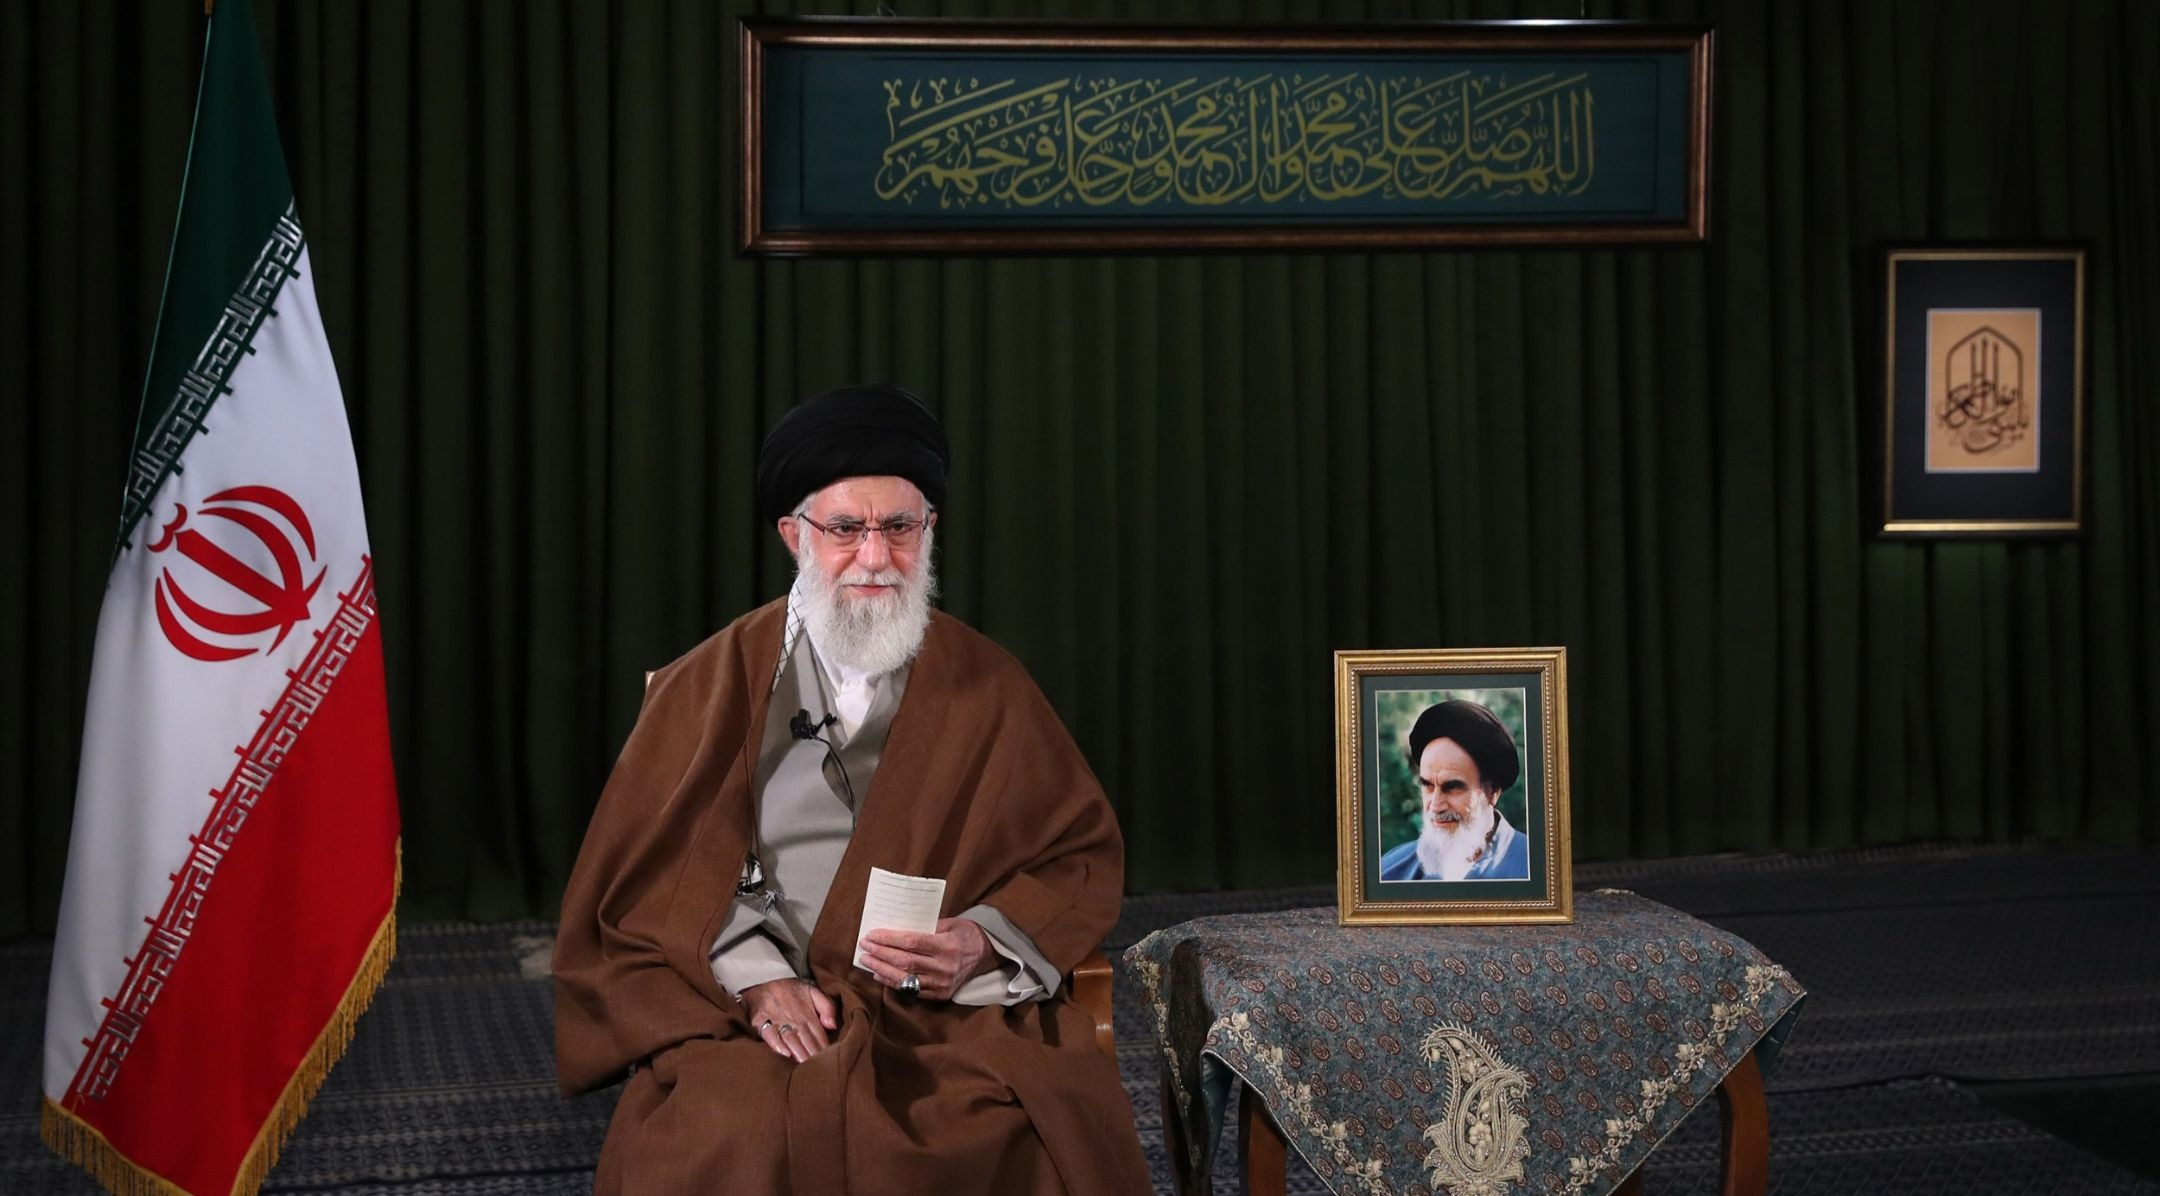 No, Twitter did not suspend Ayatollah Khamenei, Iran's supreme leader